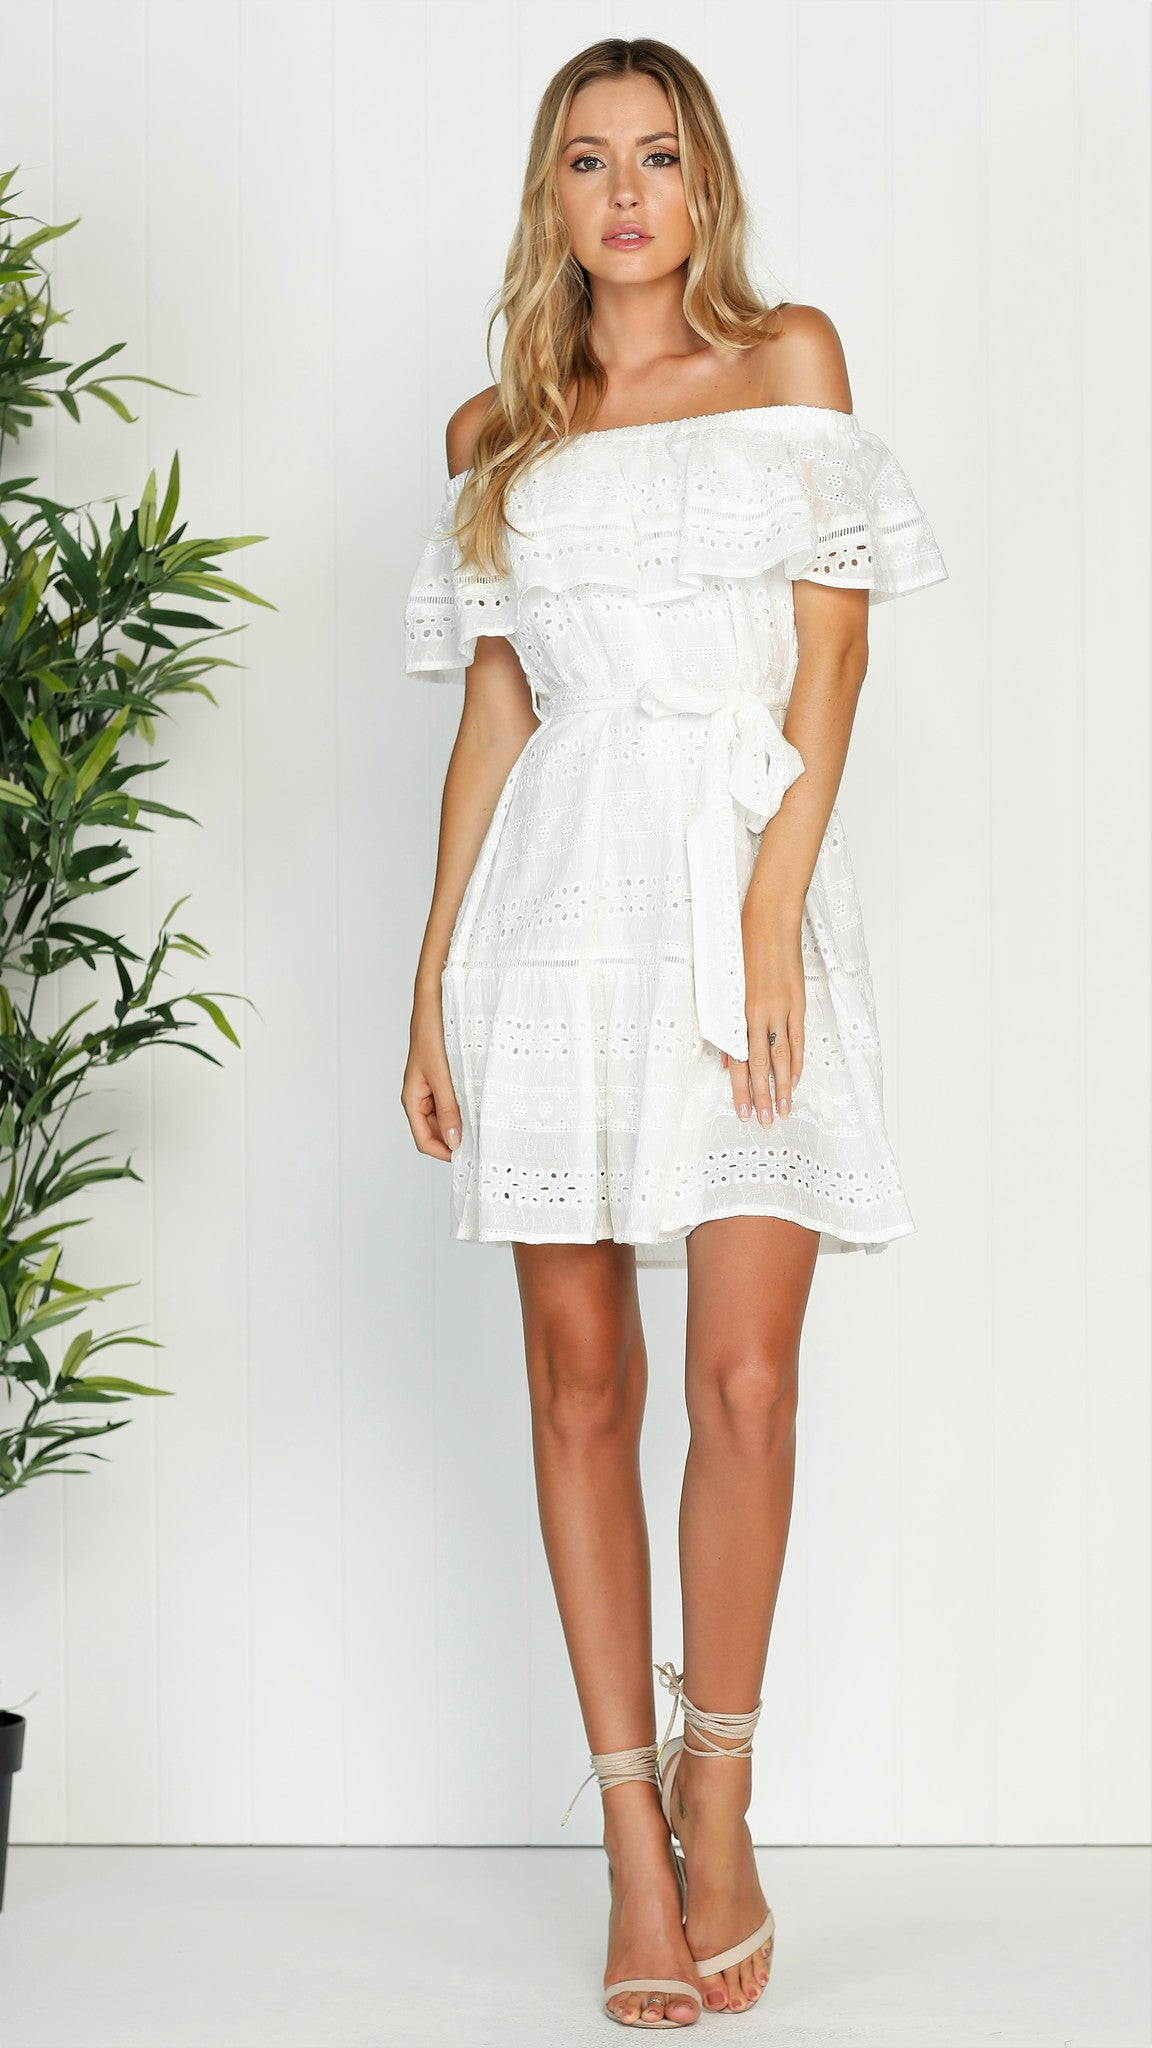 Poppy Dress - White